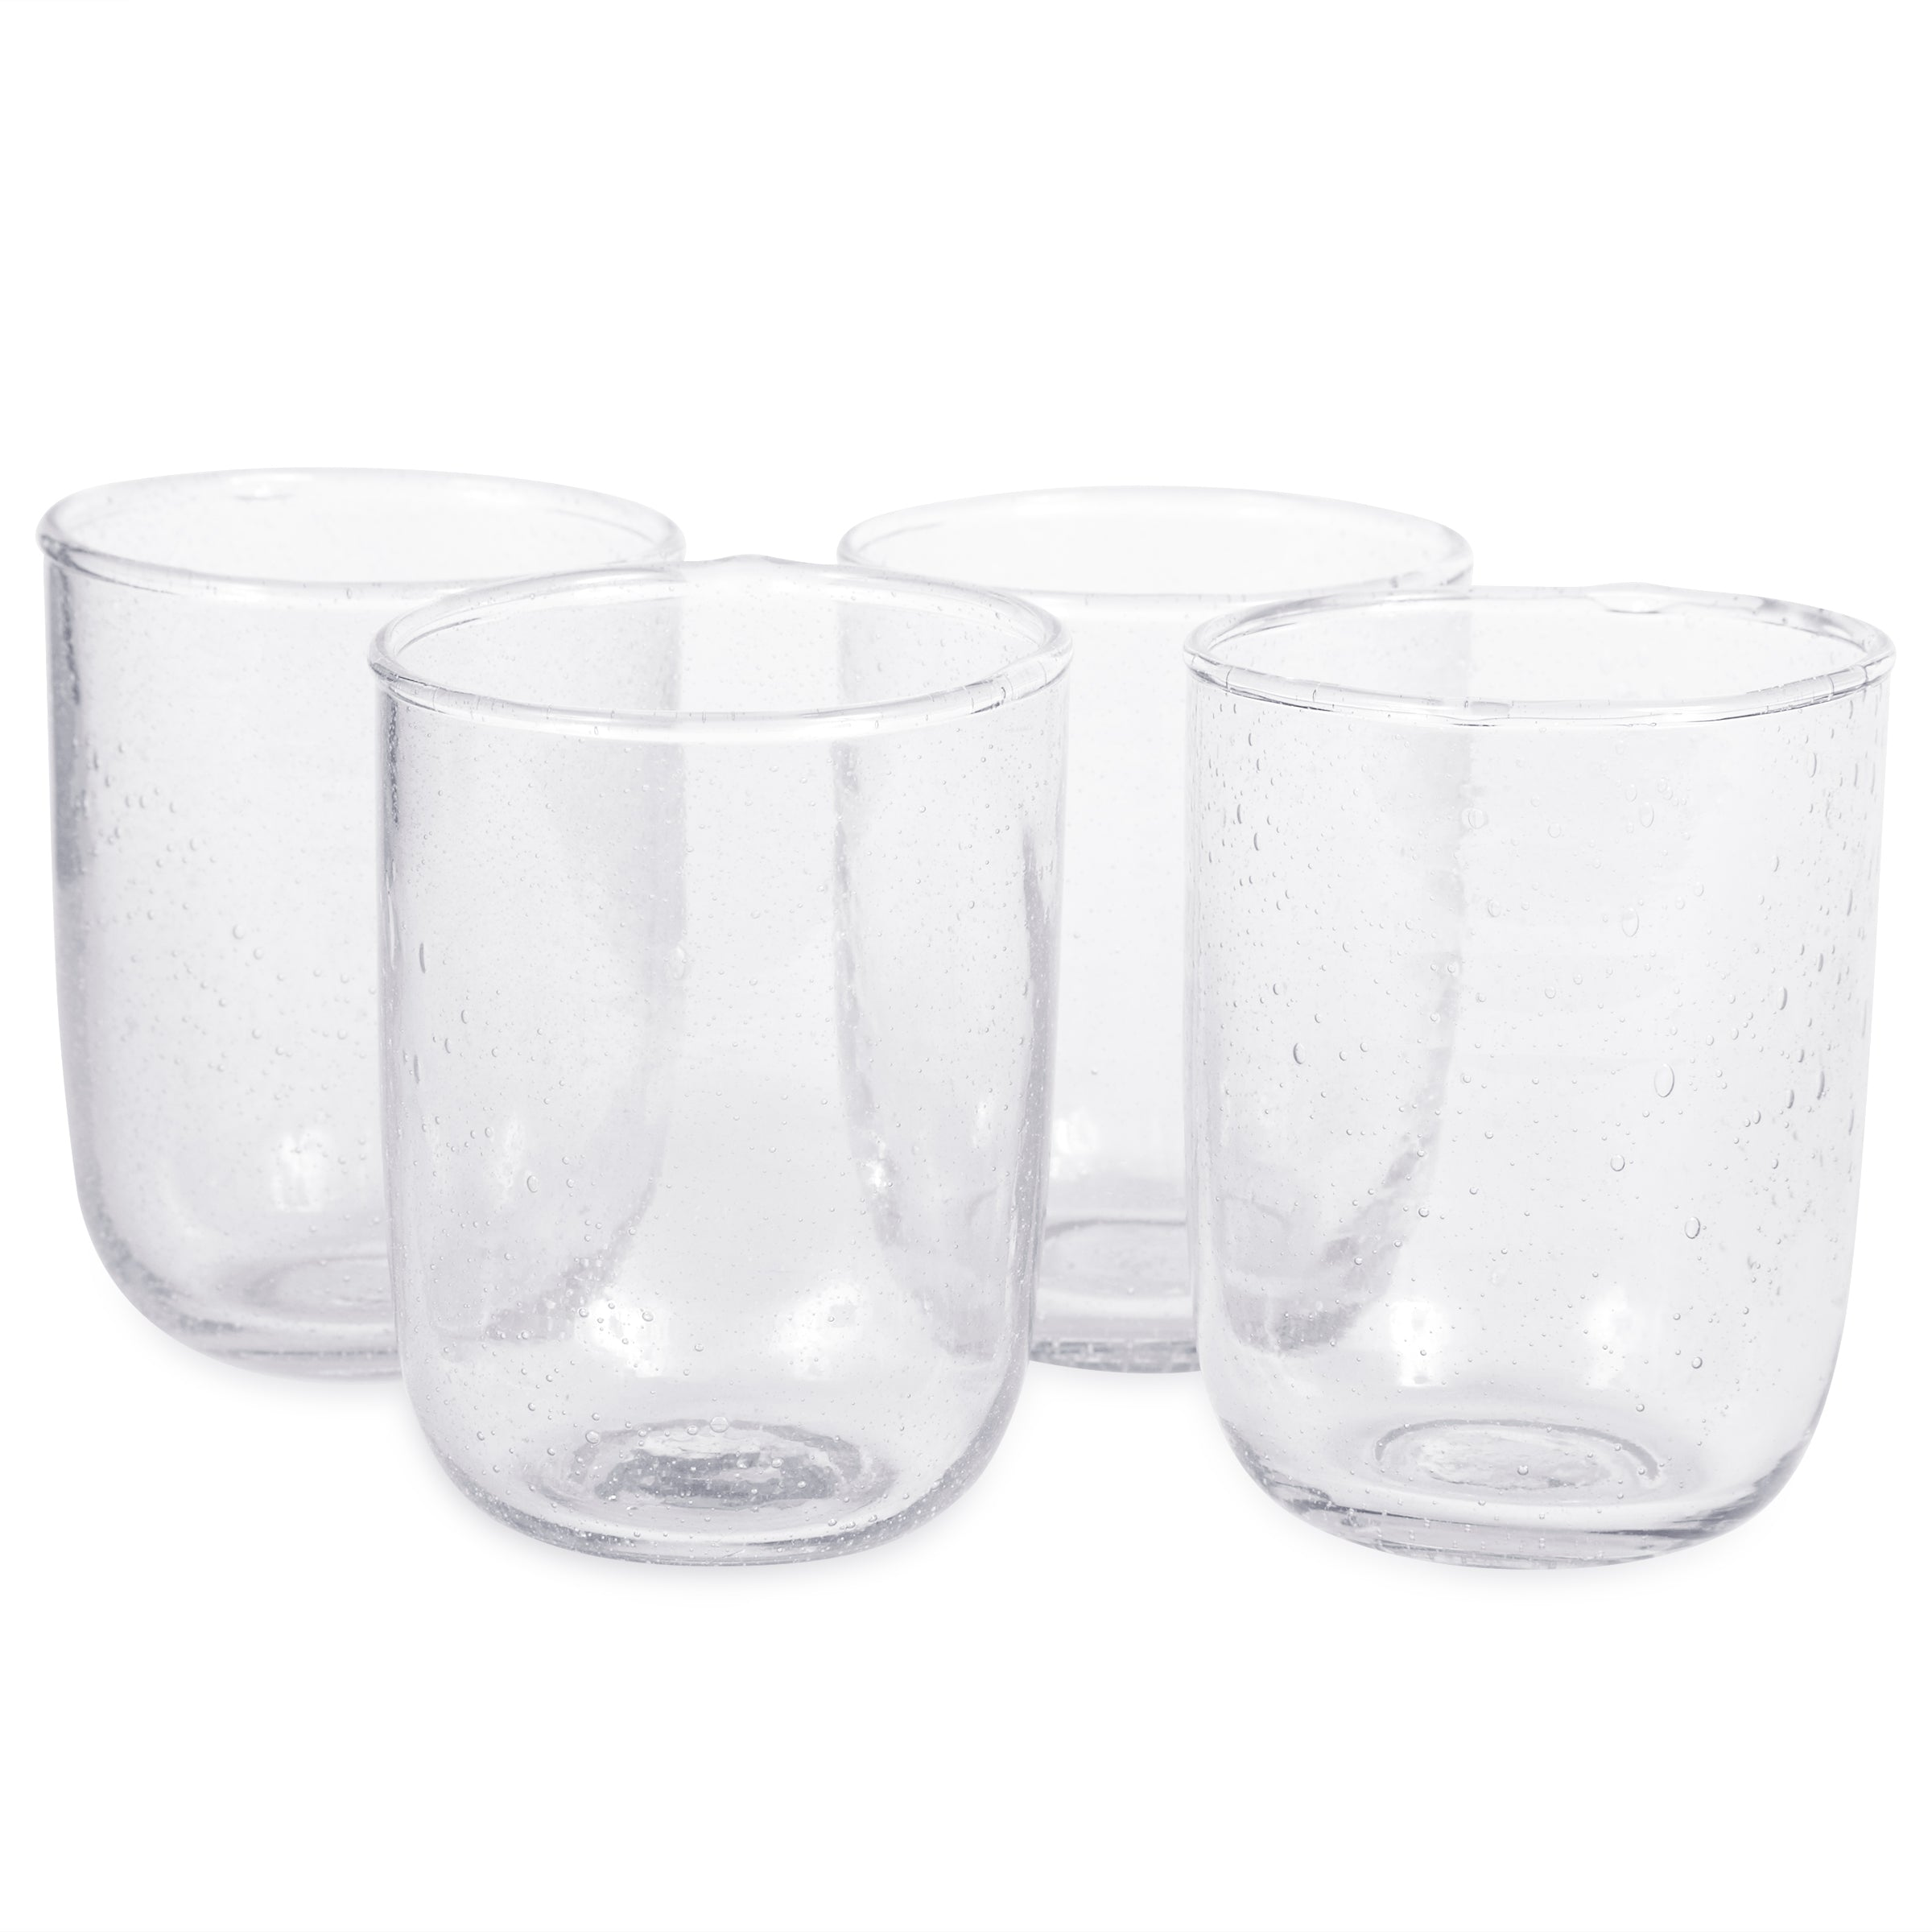 Clear Seeded Glass Tumblers - Set of 4